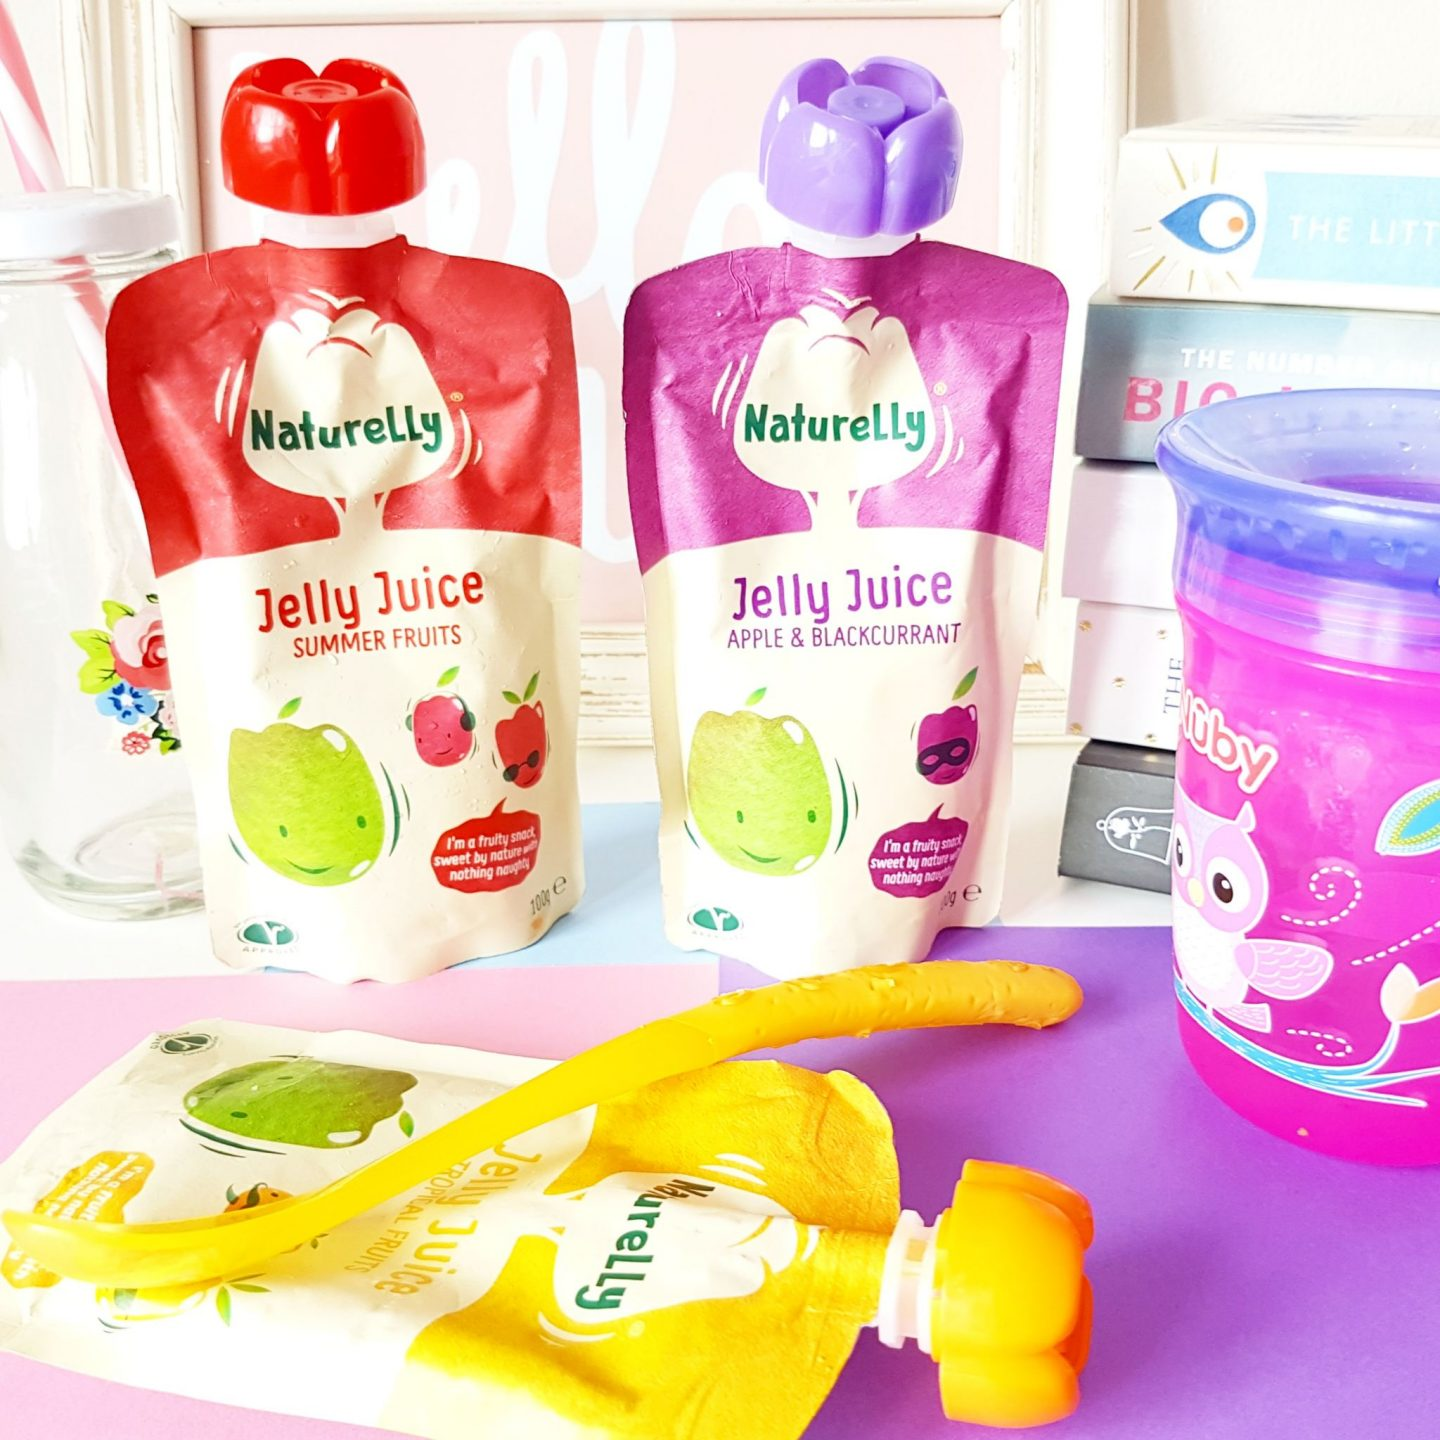 Naturelly Jelly Juice Giveaway | A fun and Healthy Lunchbox Must-Have